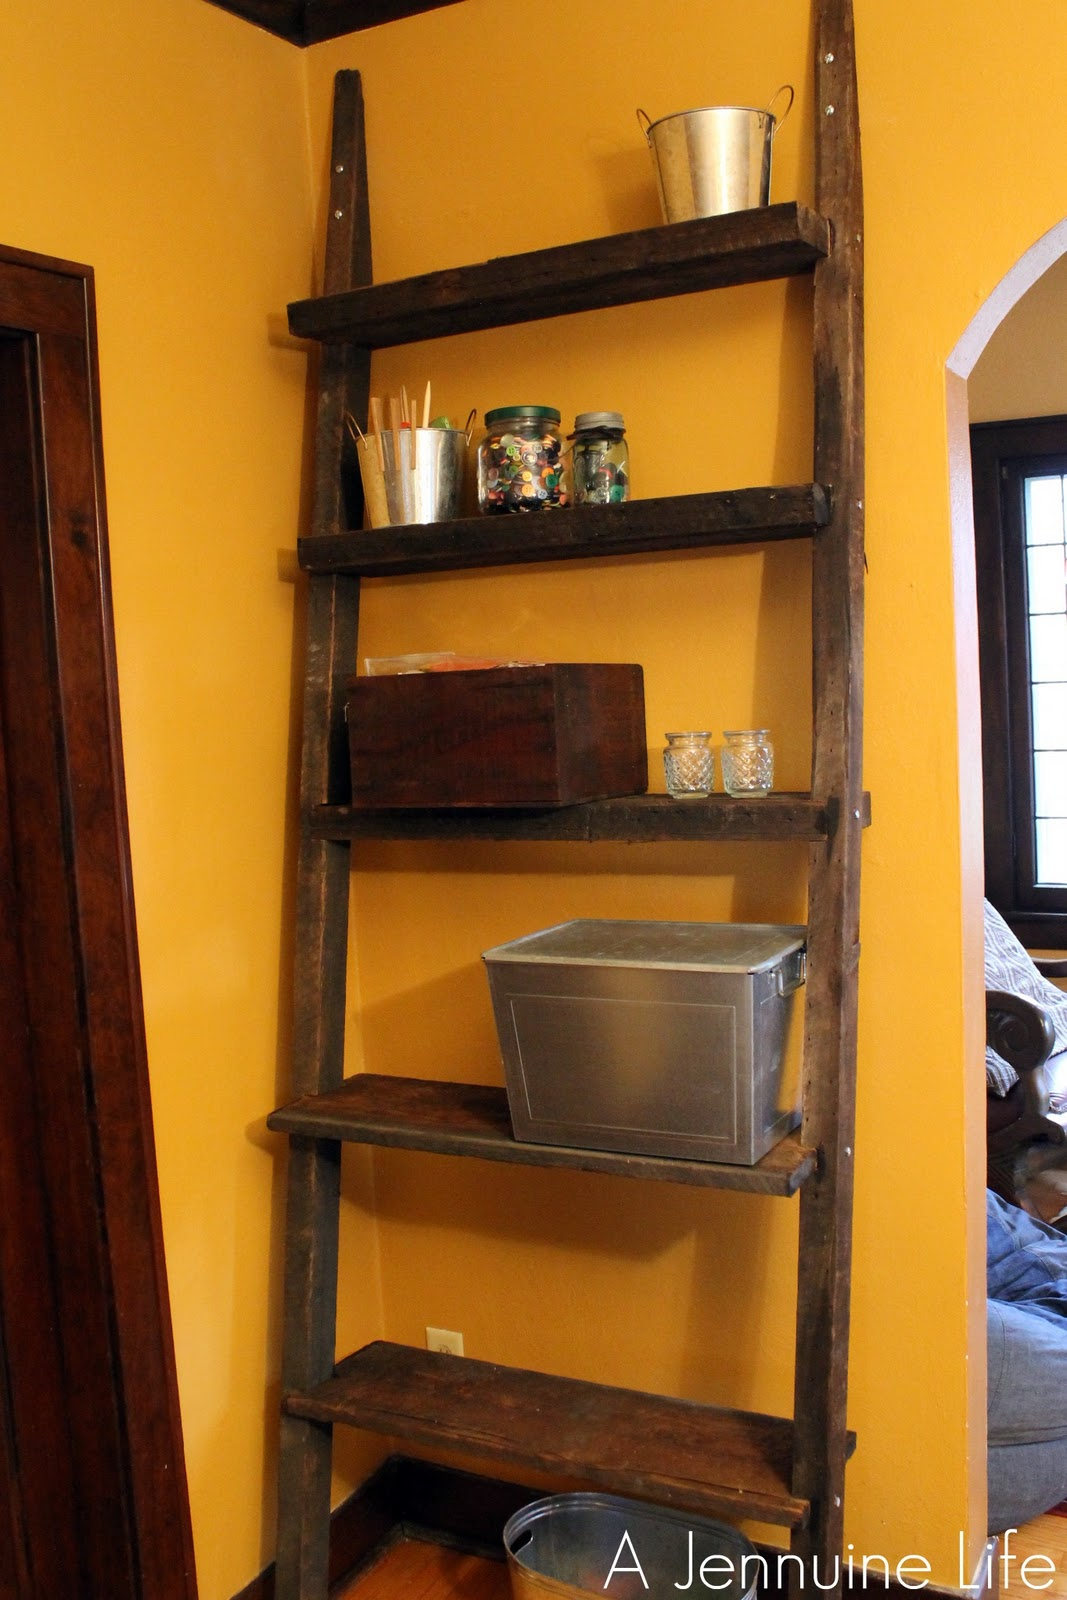 Amazing brown wooden Ladder Bookshelf before the orange wall for home decor ideas